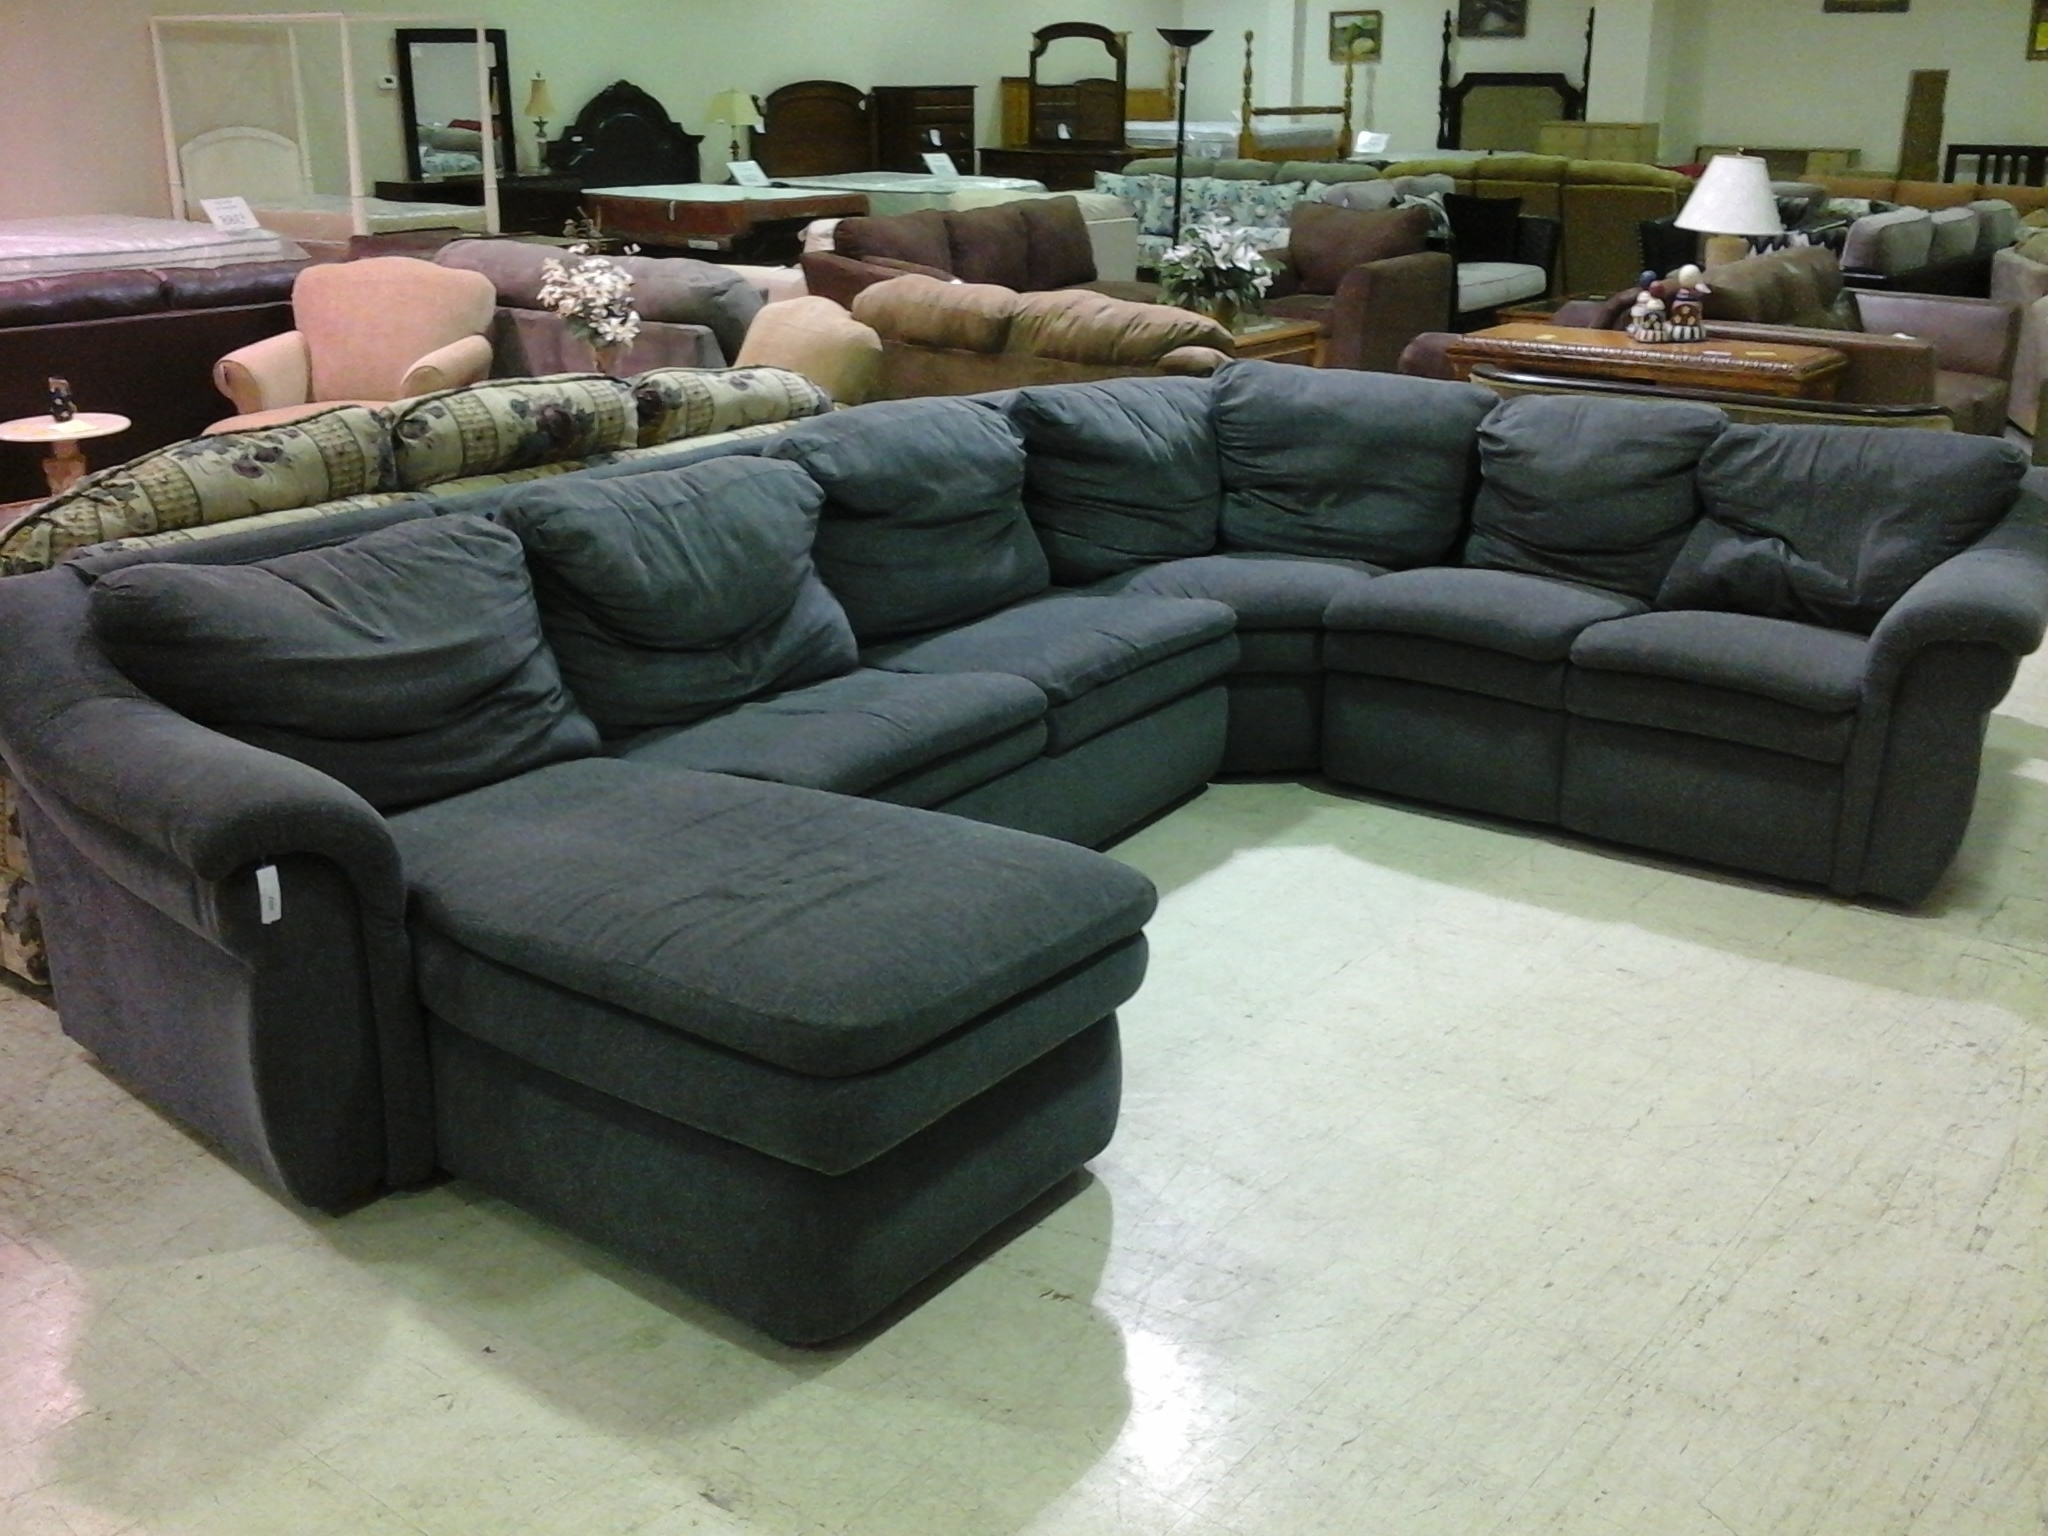 Pinterest In Latest Ventura County Sectional Sofas (View 11 of 20)